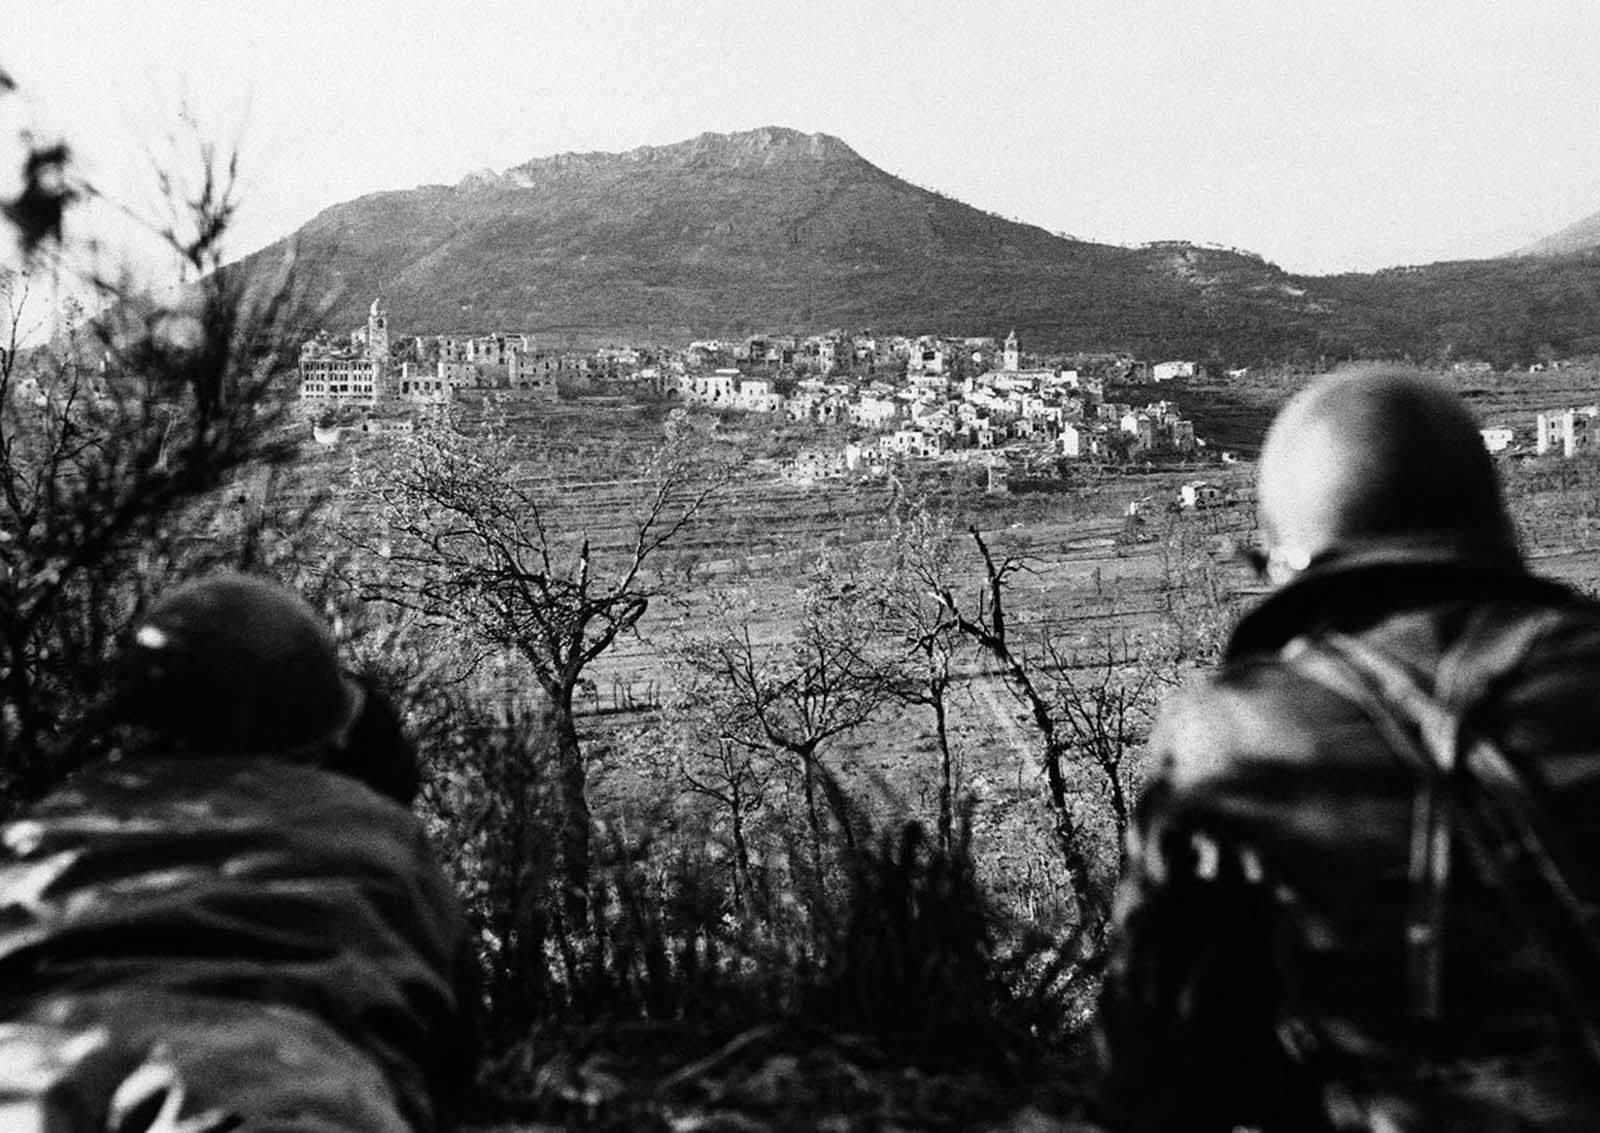 Artillery observers of the Fifth Army look over the German-held Italian town of San Vittore, on November 1, 1943, before an artillery barrage to dislodge the Germans.